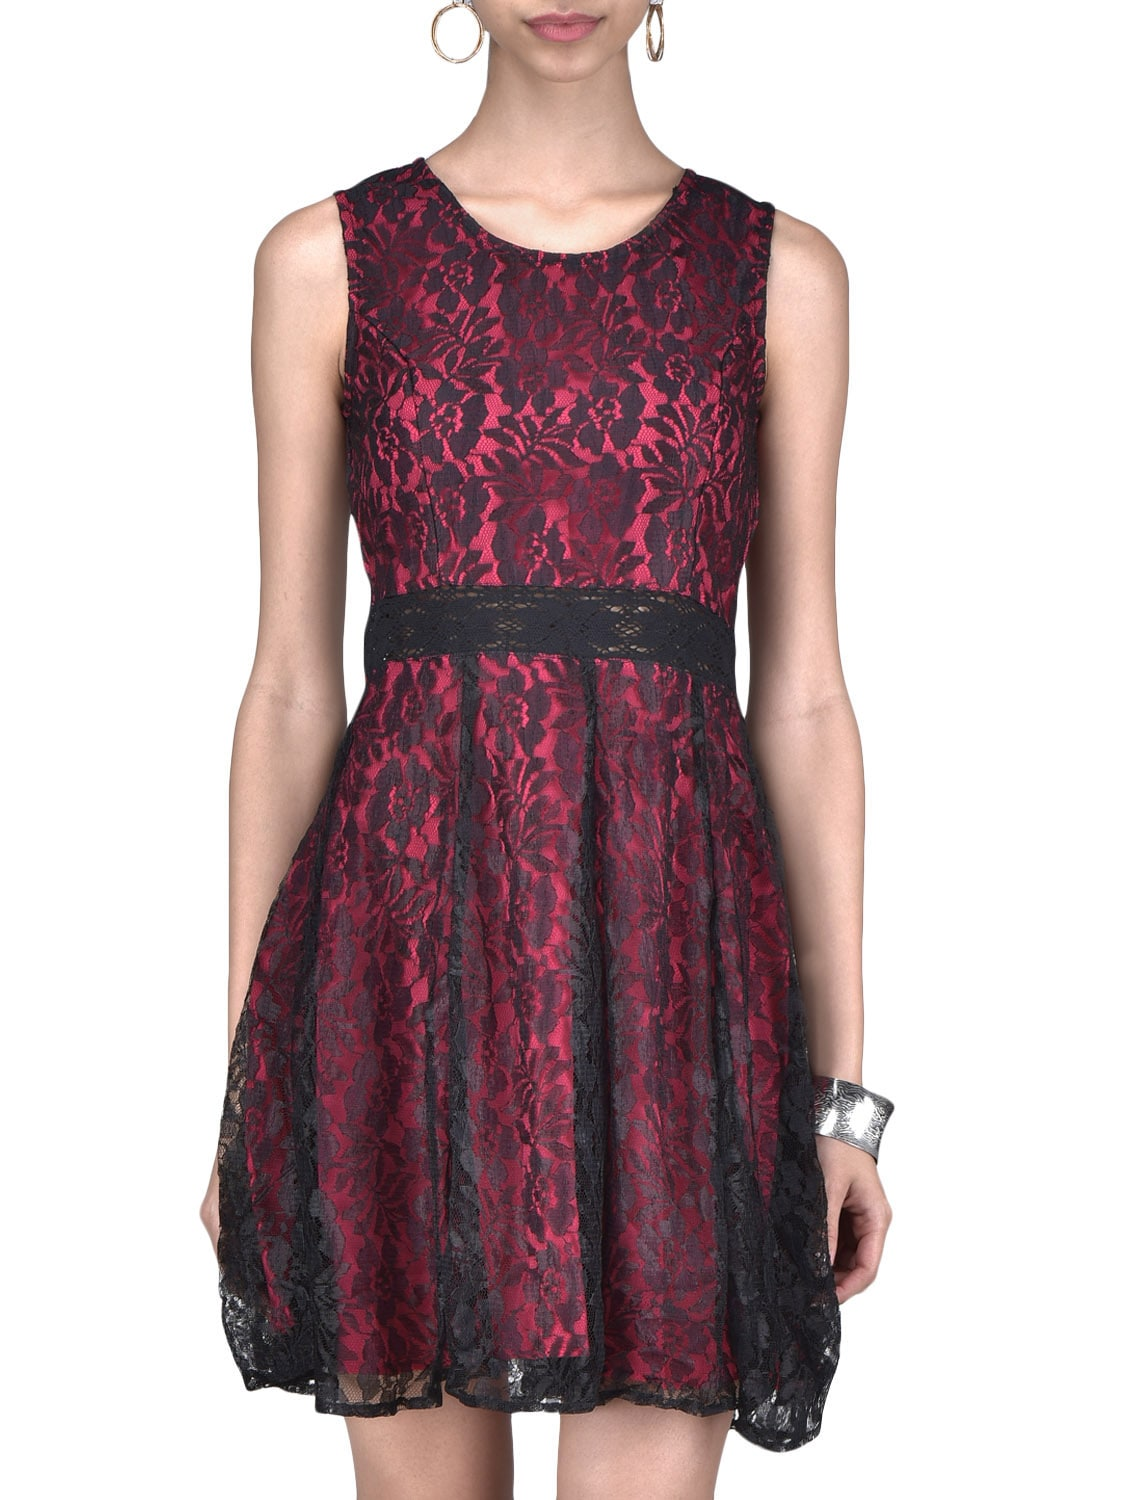 0b2394c11ef3 Buy Pink Crepe And Lace Floral Printed Sleeveless Dress by The Vanca -  Online shopping for Dresses in India